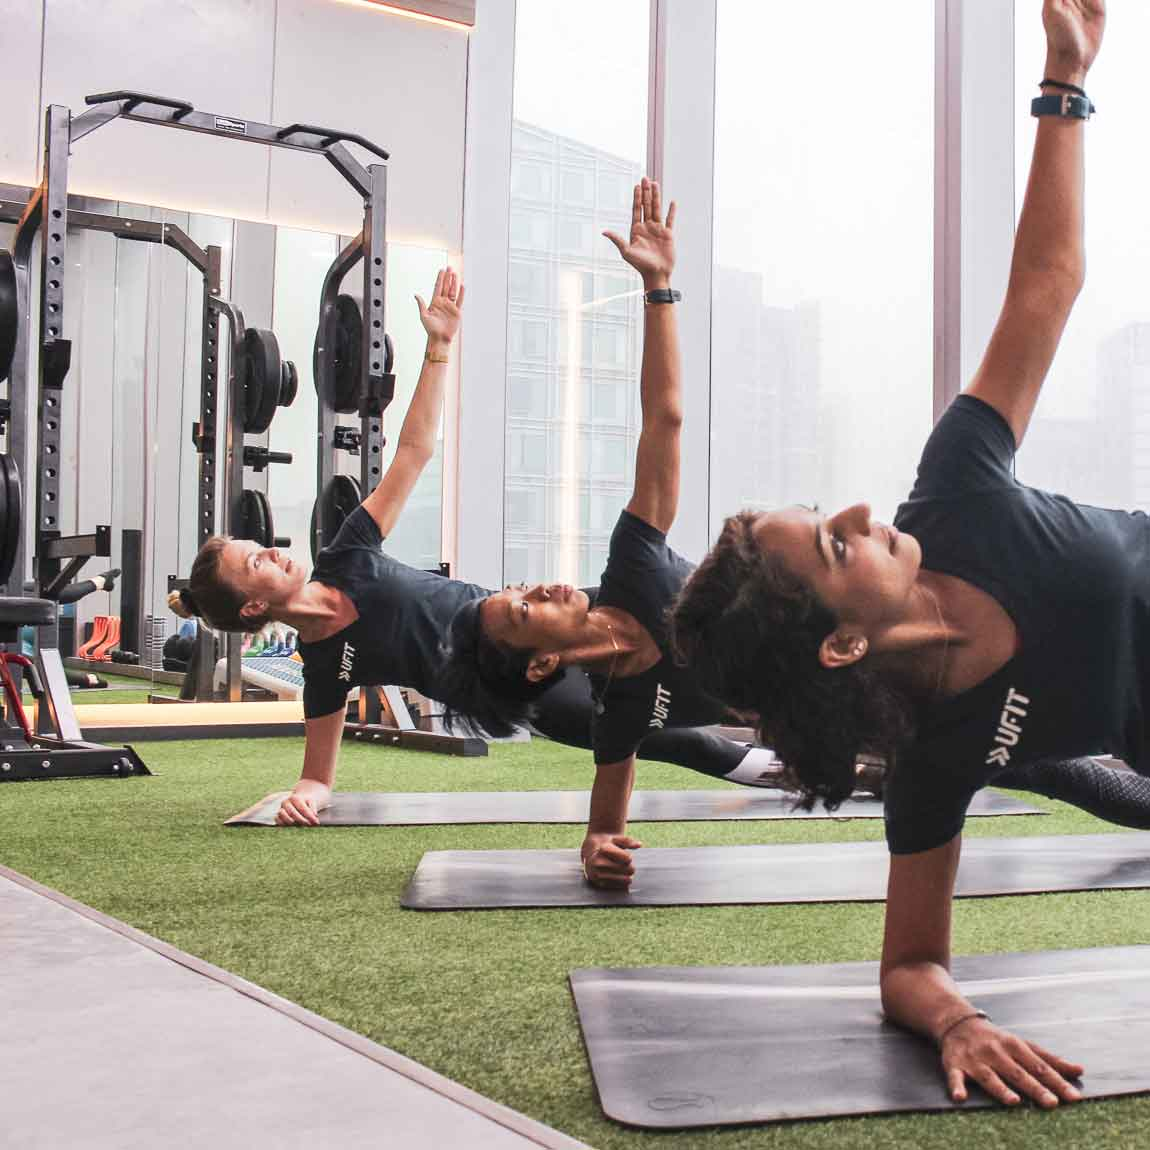 Pilates classes in a group